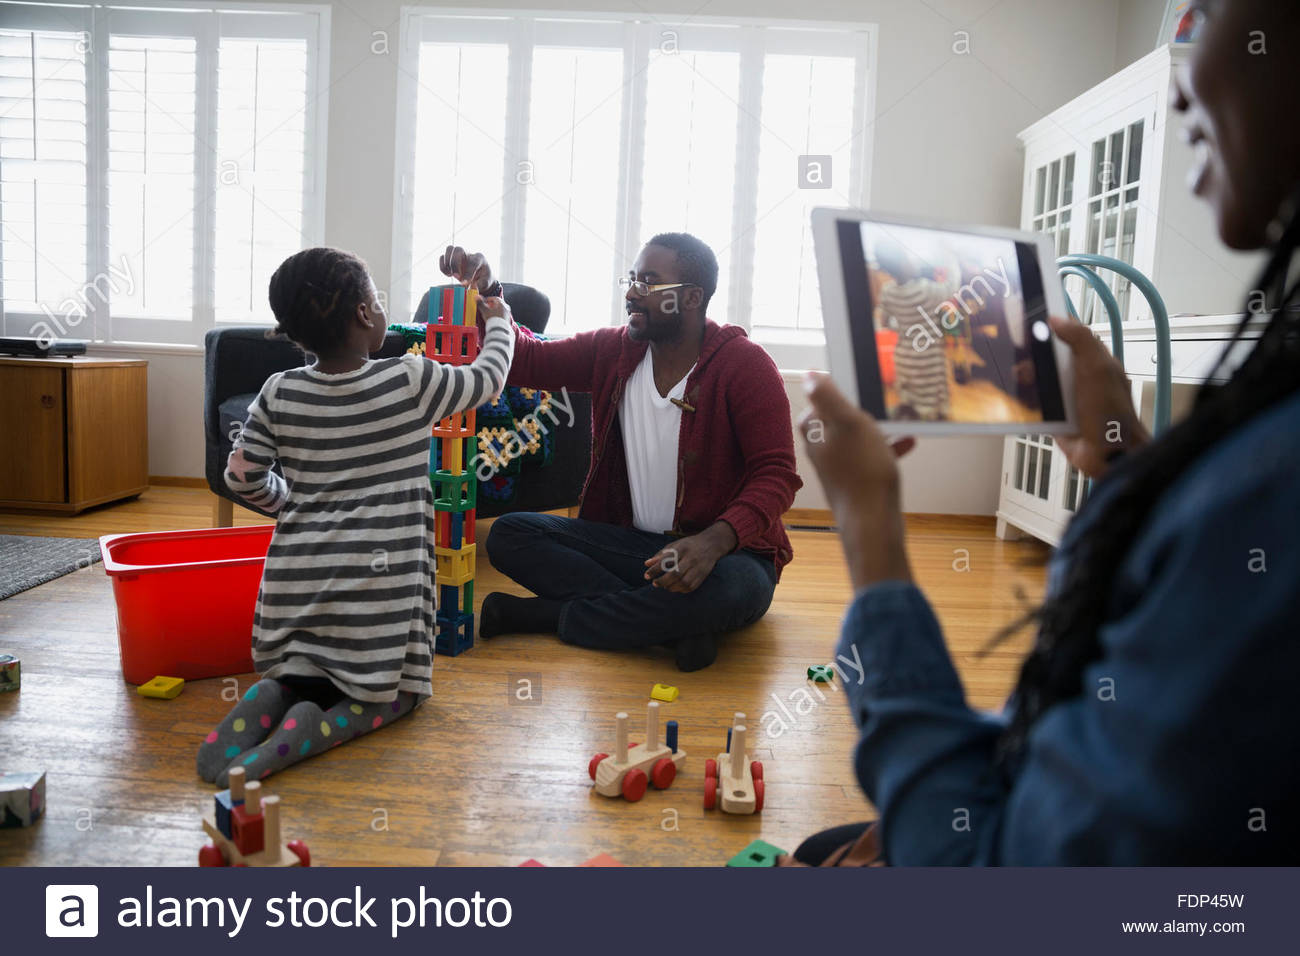 Mother photographing family stacking blocks - Stock Image